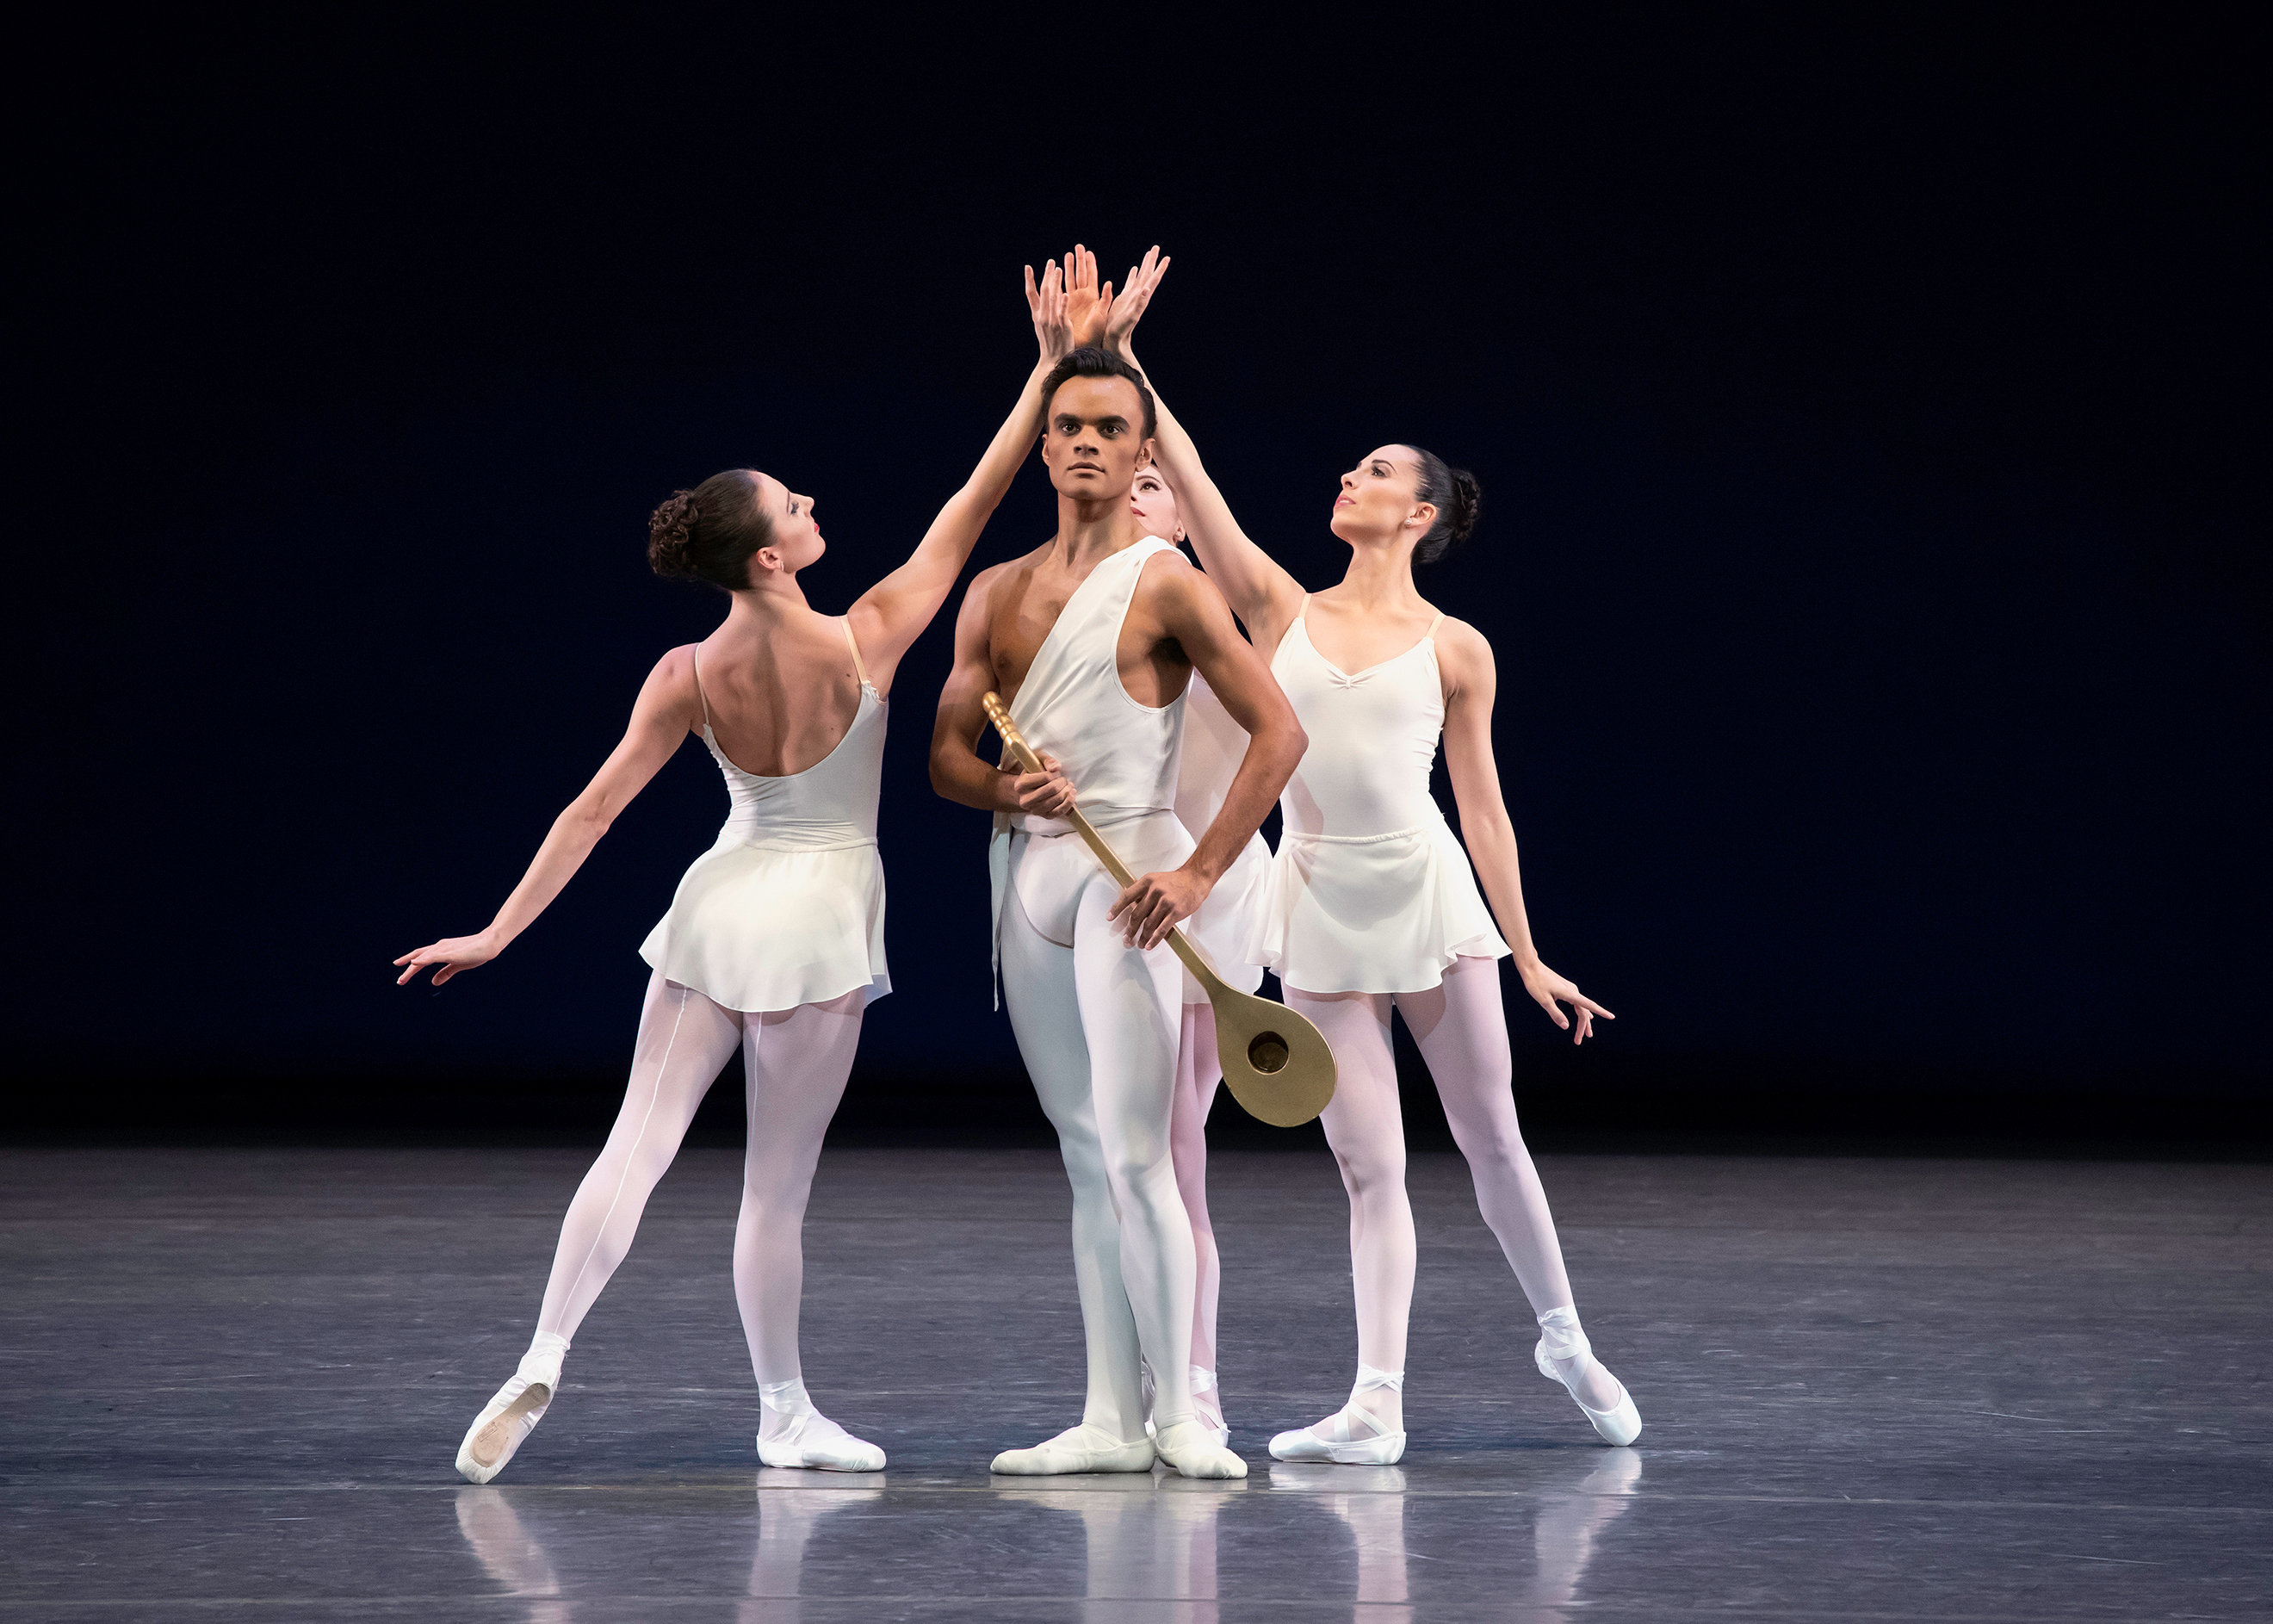 New York City Ballet is streaming a virtual spring season